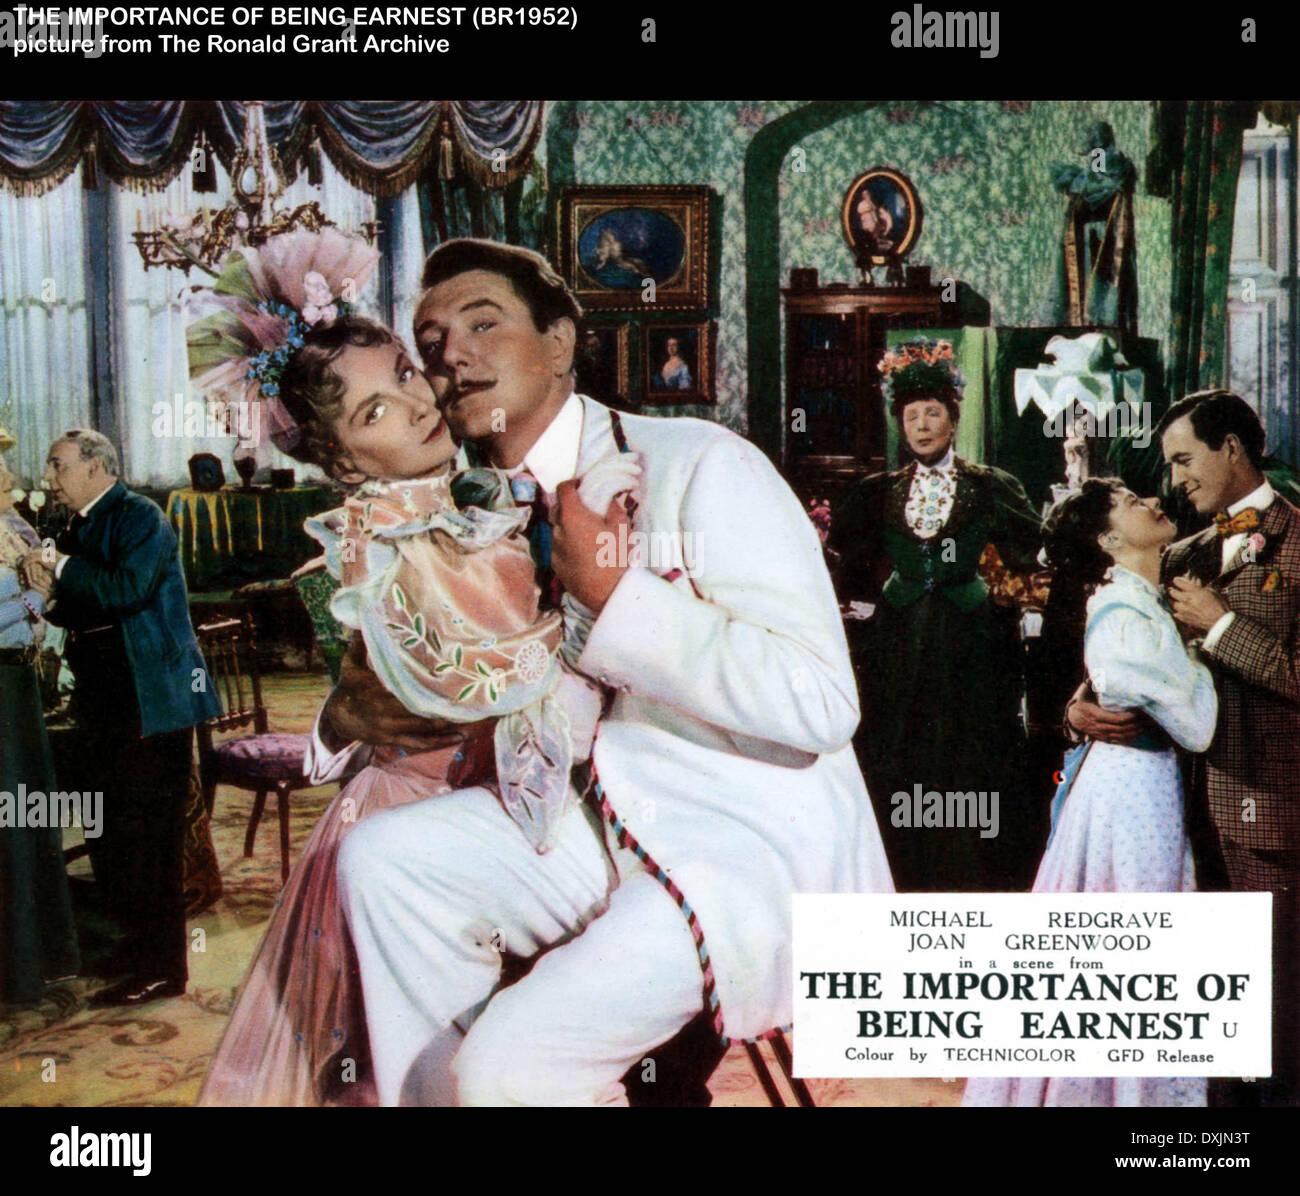 the importance of being earnest film The importance of being earnest two young gentlemen living in 1890's england use the same pseudonym (ernest) on the sly, which is fine until they both fall in love with women using that name, which leads to a comedy of mistaken identities.